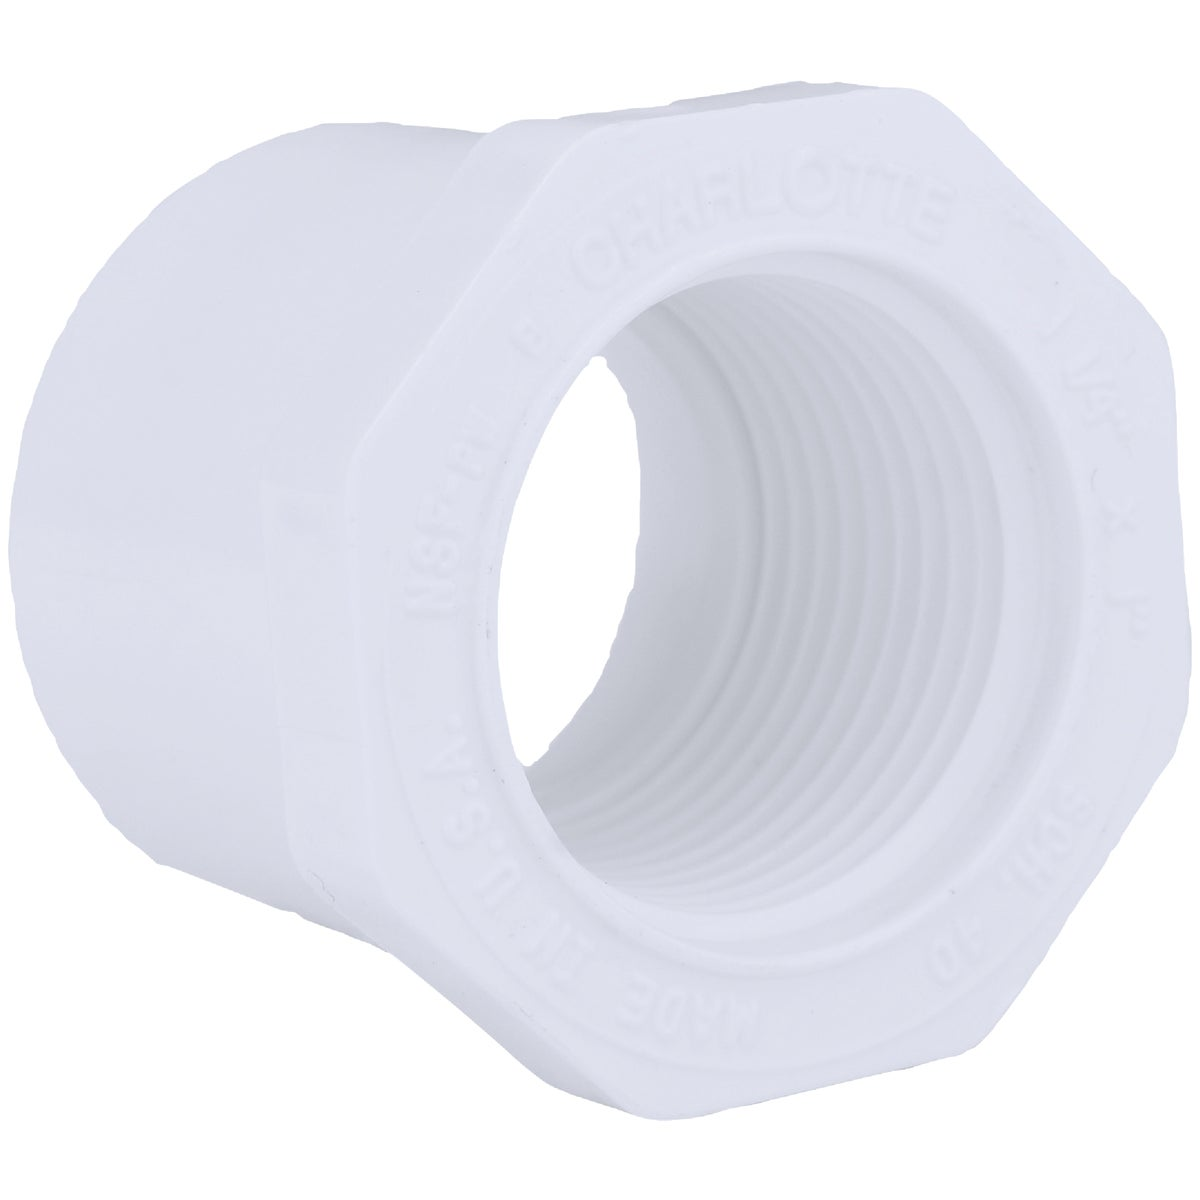 1-1/4X1 SPXFIP BUSHING - 34240 by Genova Inc